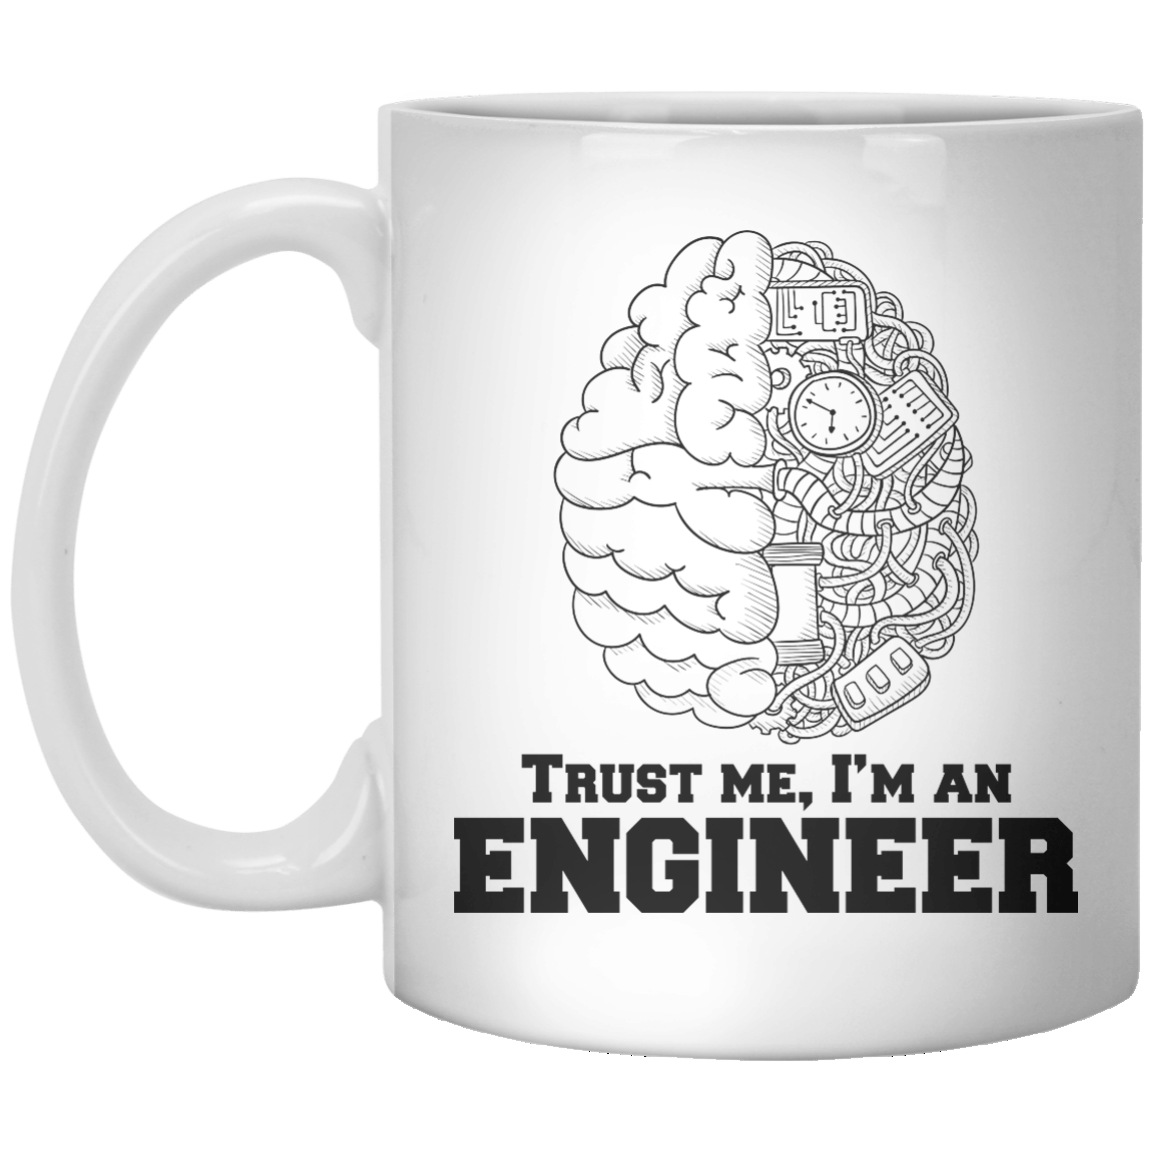 trust me, i'm an engineer MUG - Shirtoopia